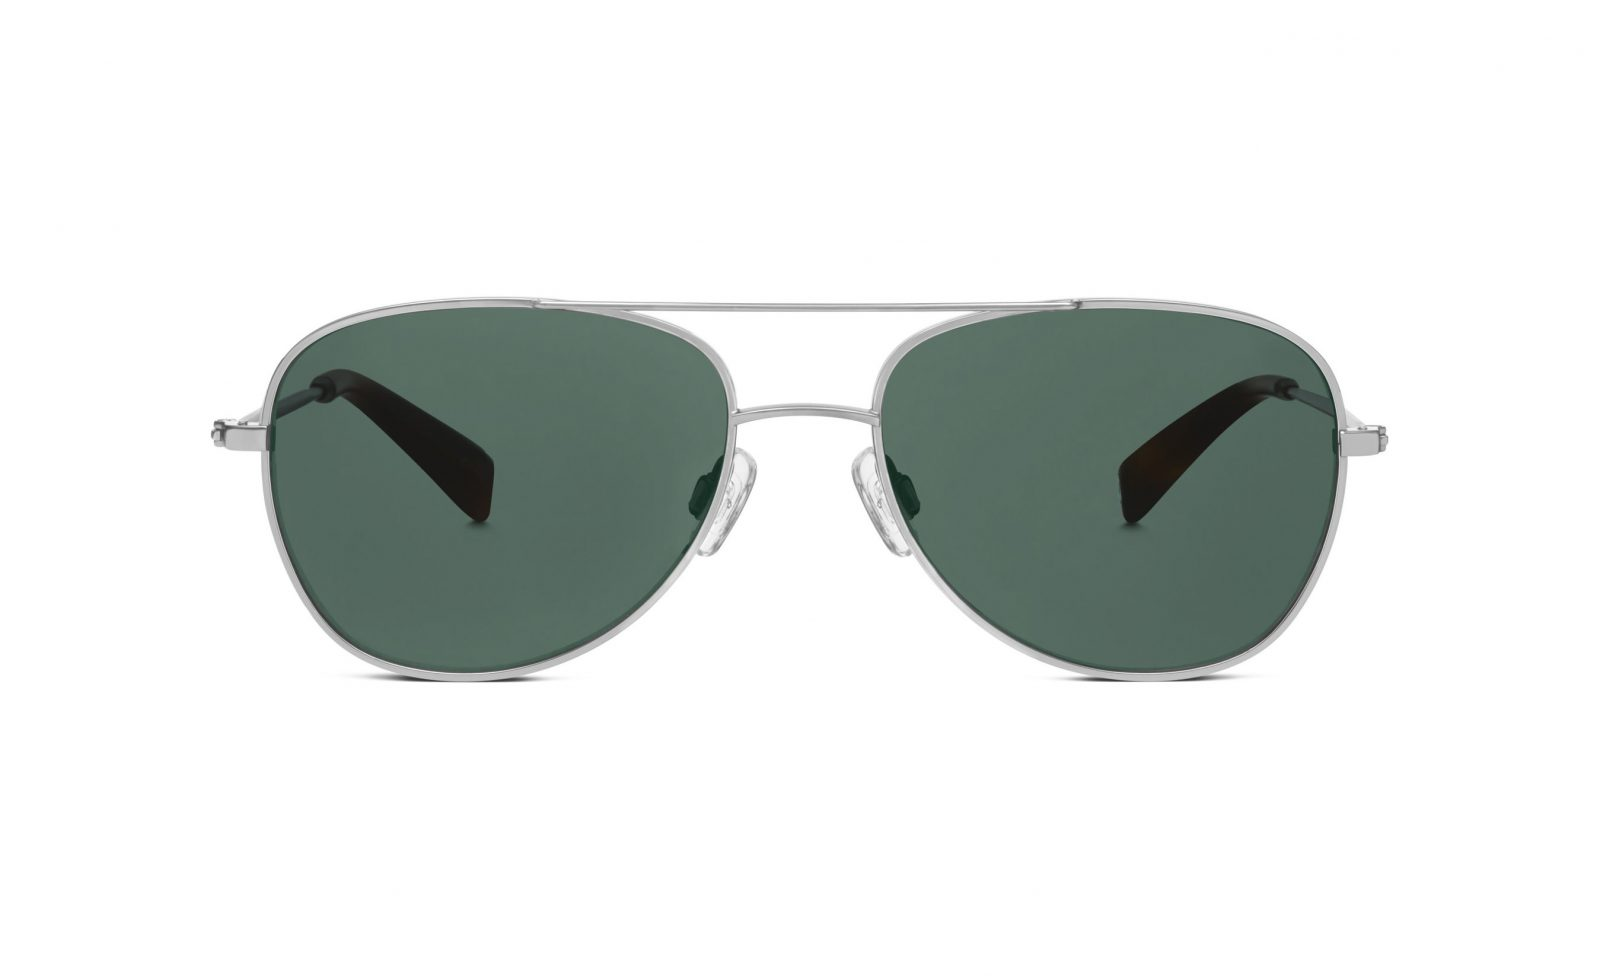 Lionel Sunglasses by Warby Parker Main Image 1600x976 - Lionel Sunglasses